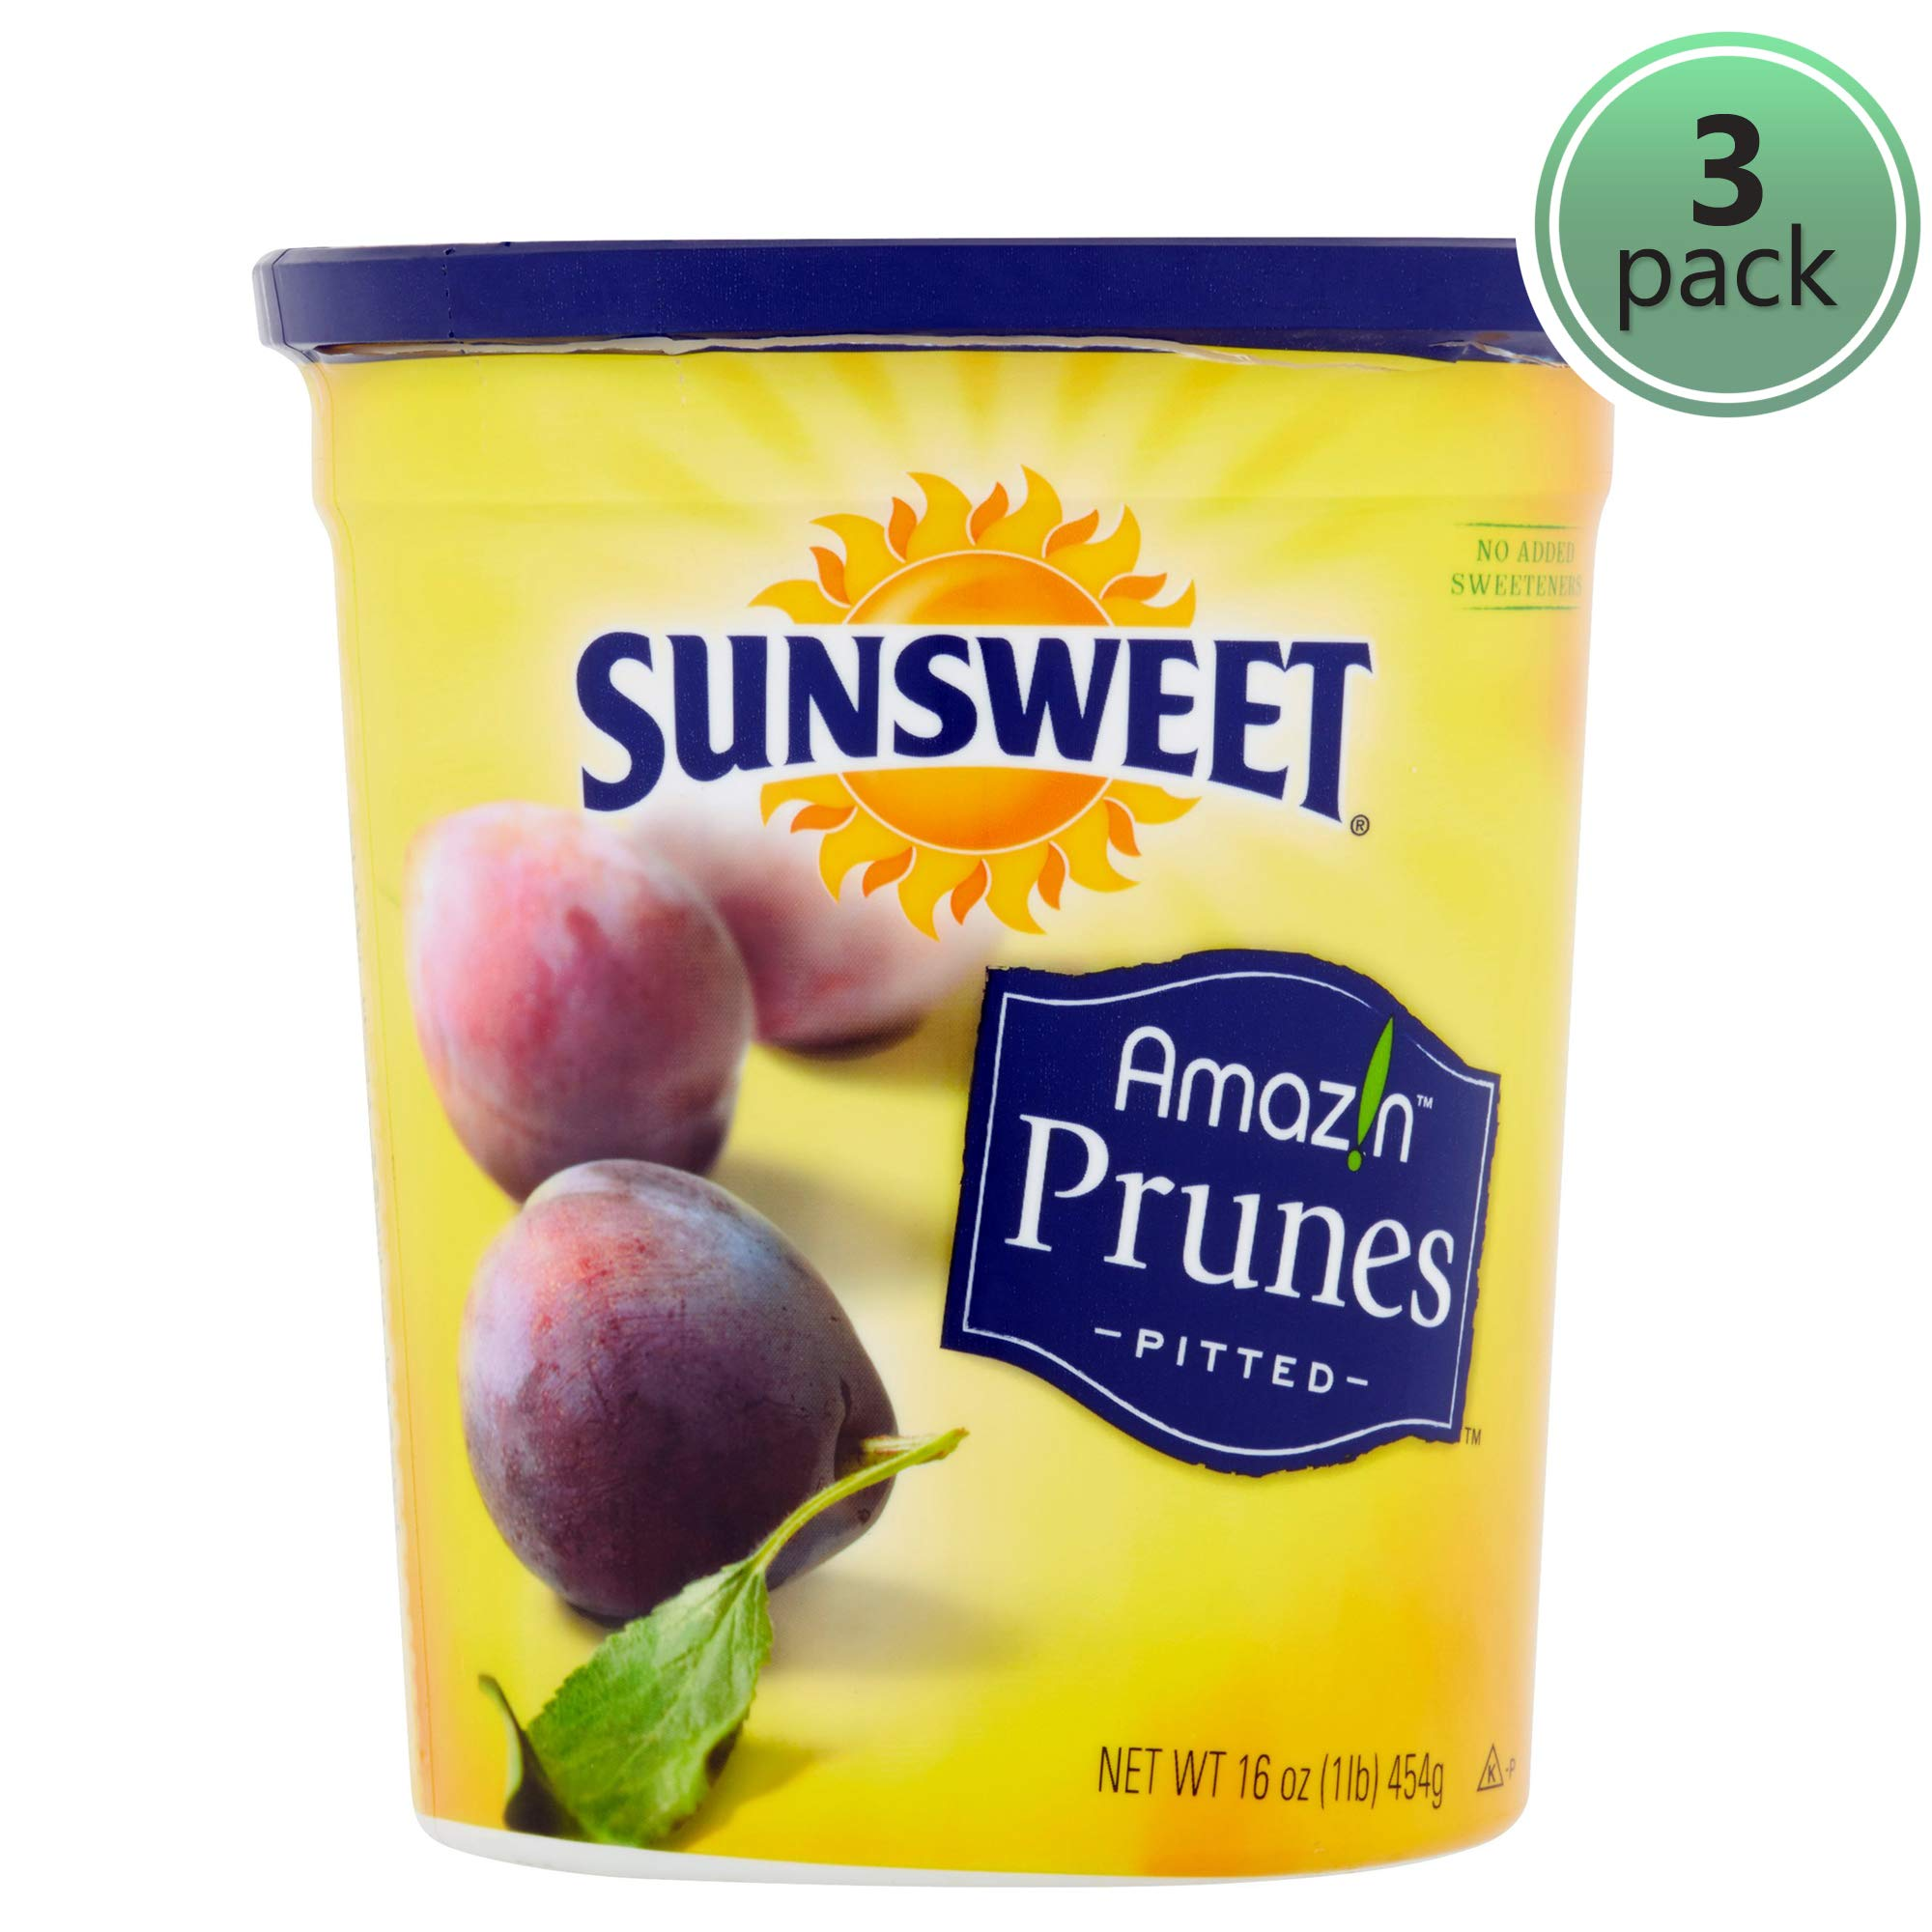 SUNSWEET Amazin Pitted Prunes, 16 oz - Pack of 3 by Sunsweet